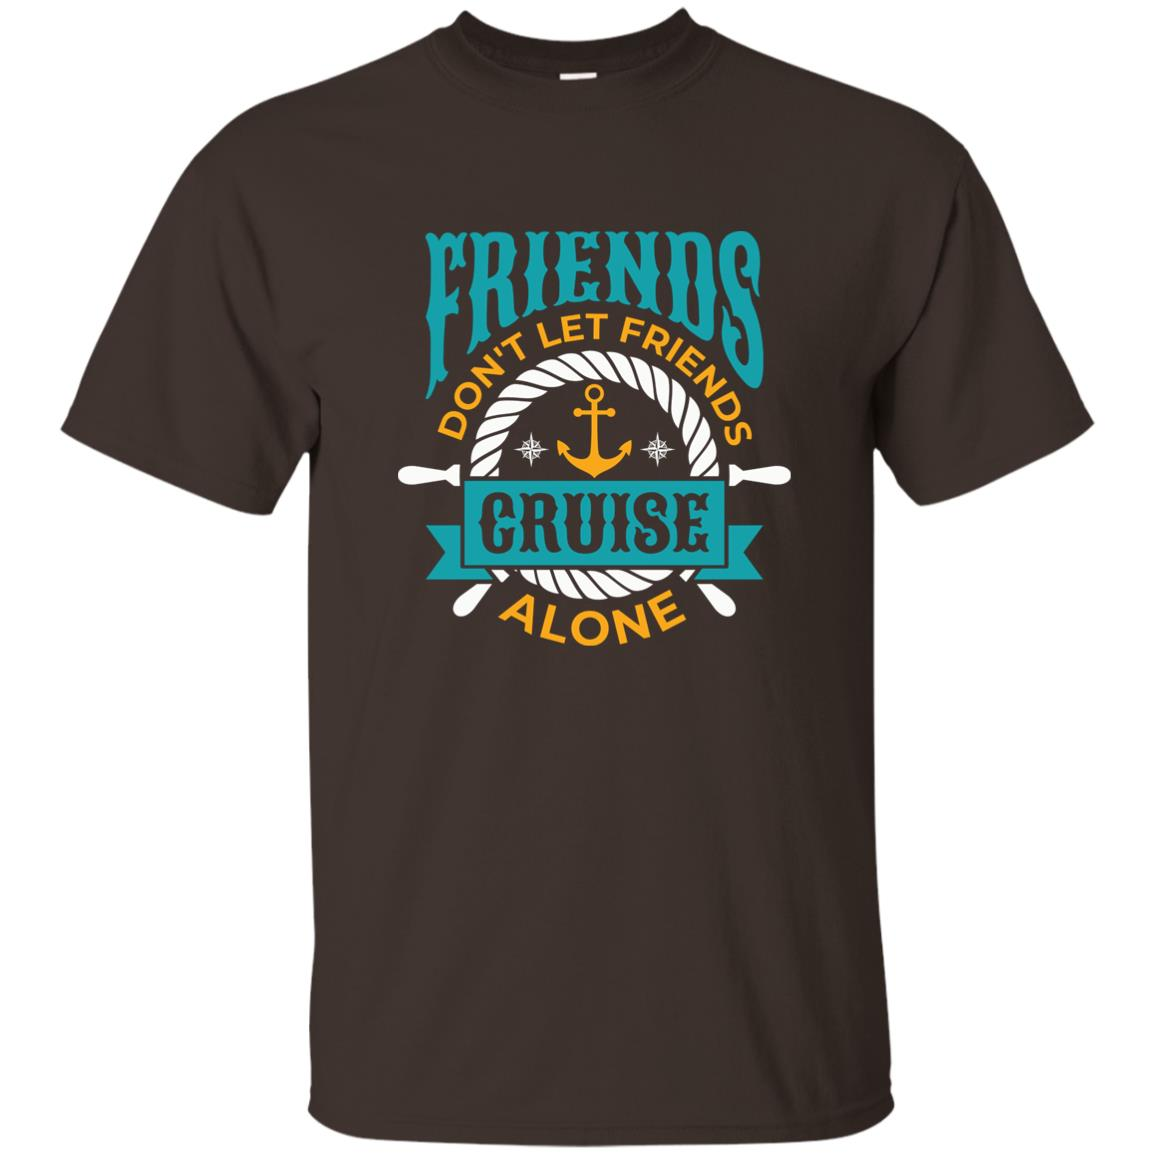 Cruise Friends Don't Let Friends Cruise Alone Tee-2 Unisex Short Sleeve